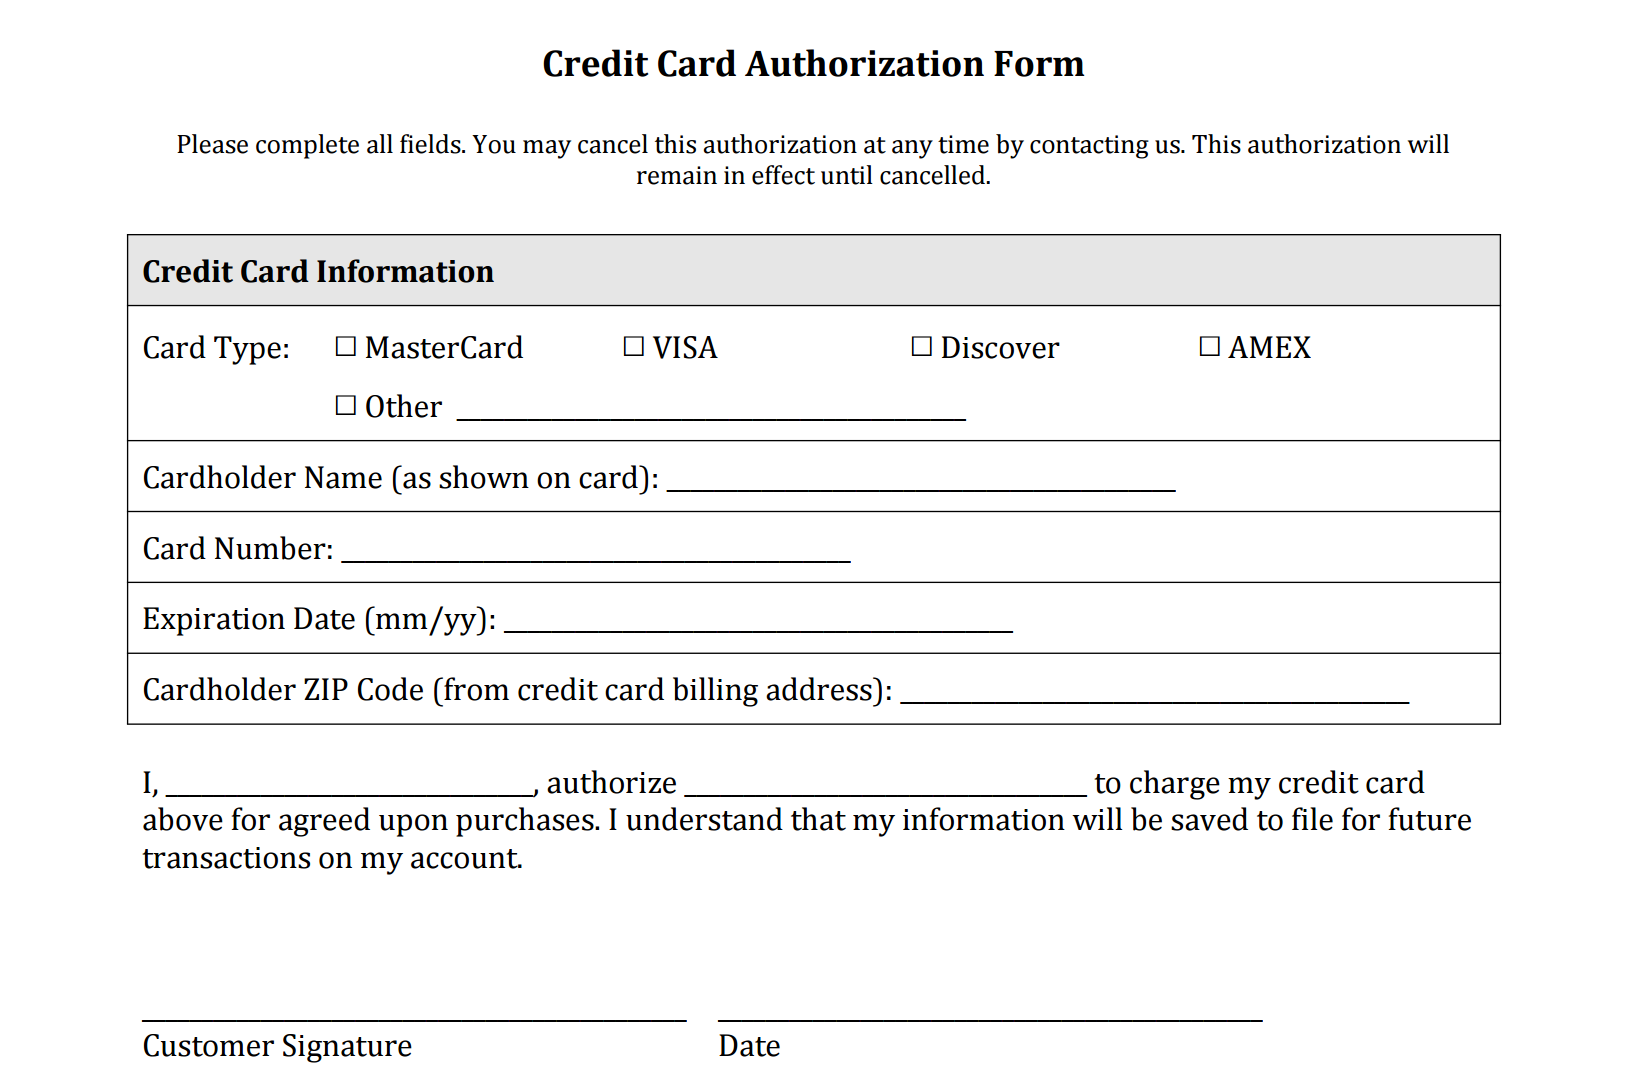 Credit card authorization form templates download credit authorization form spiritdancerdesigns Gallery